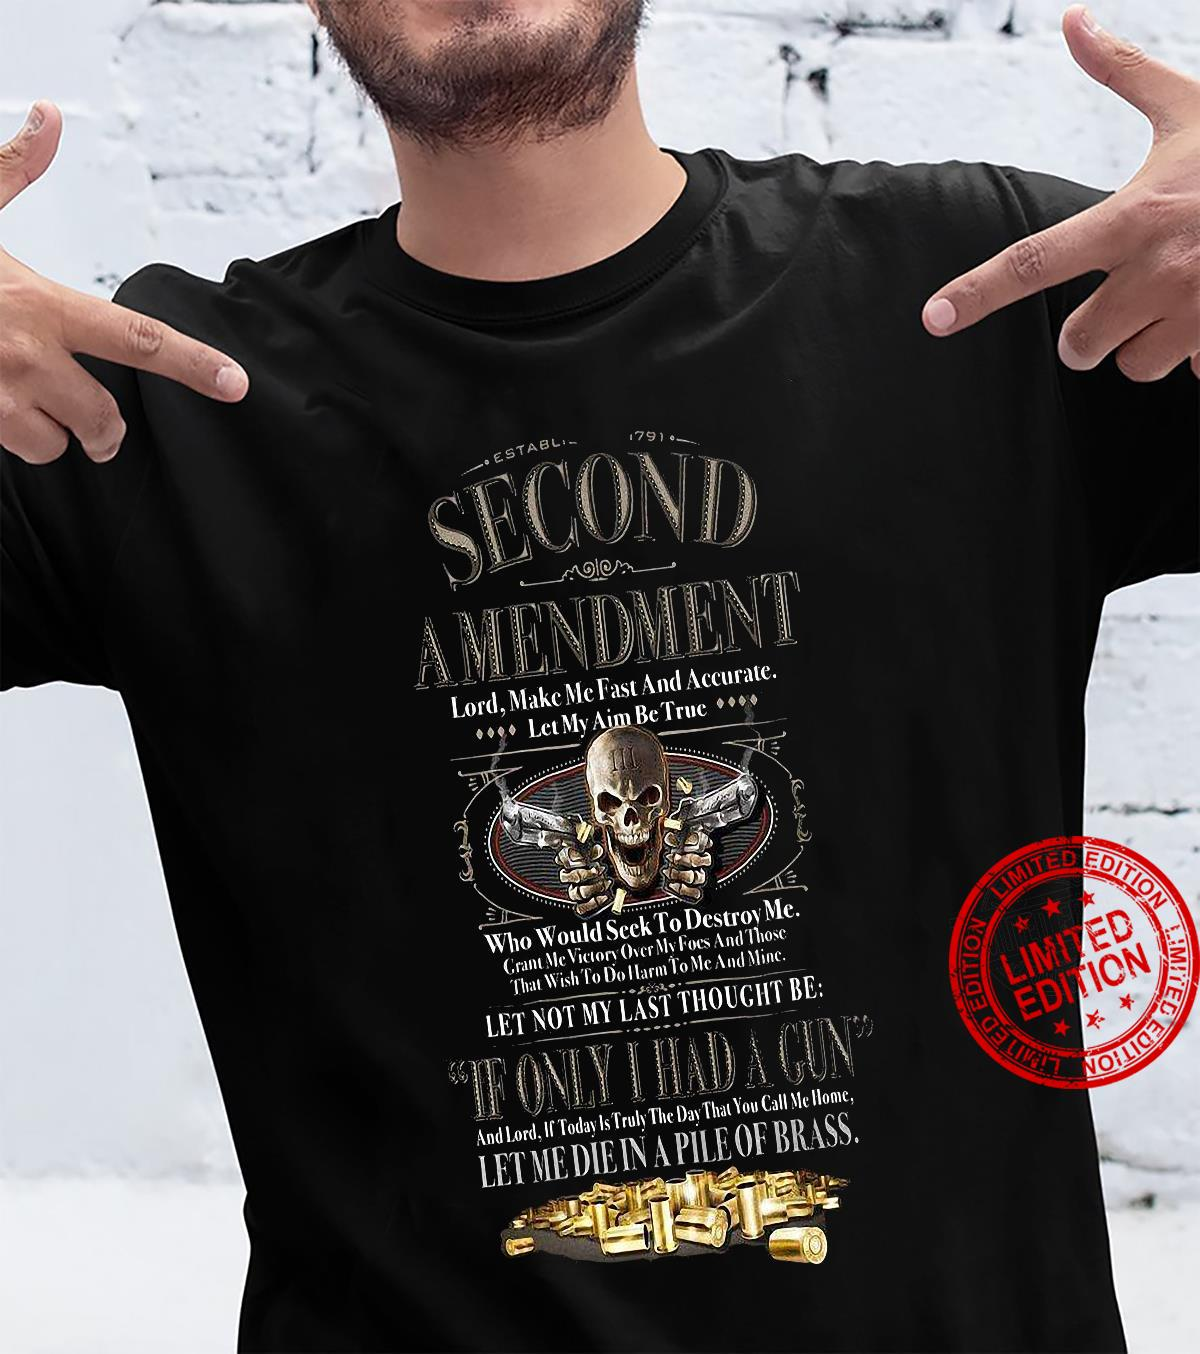 Second Amendment If Only I Had A Gun Let Me Die In A Pile Of Brass Shirt